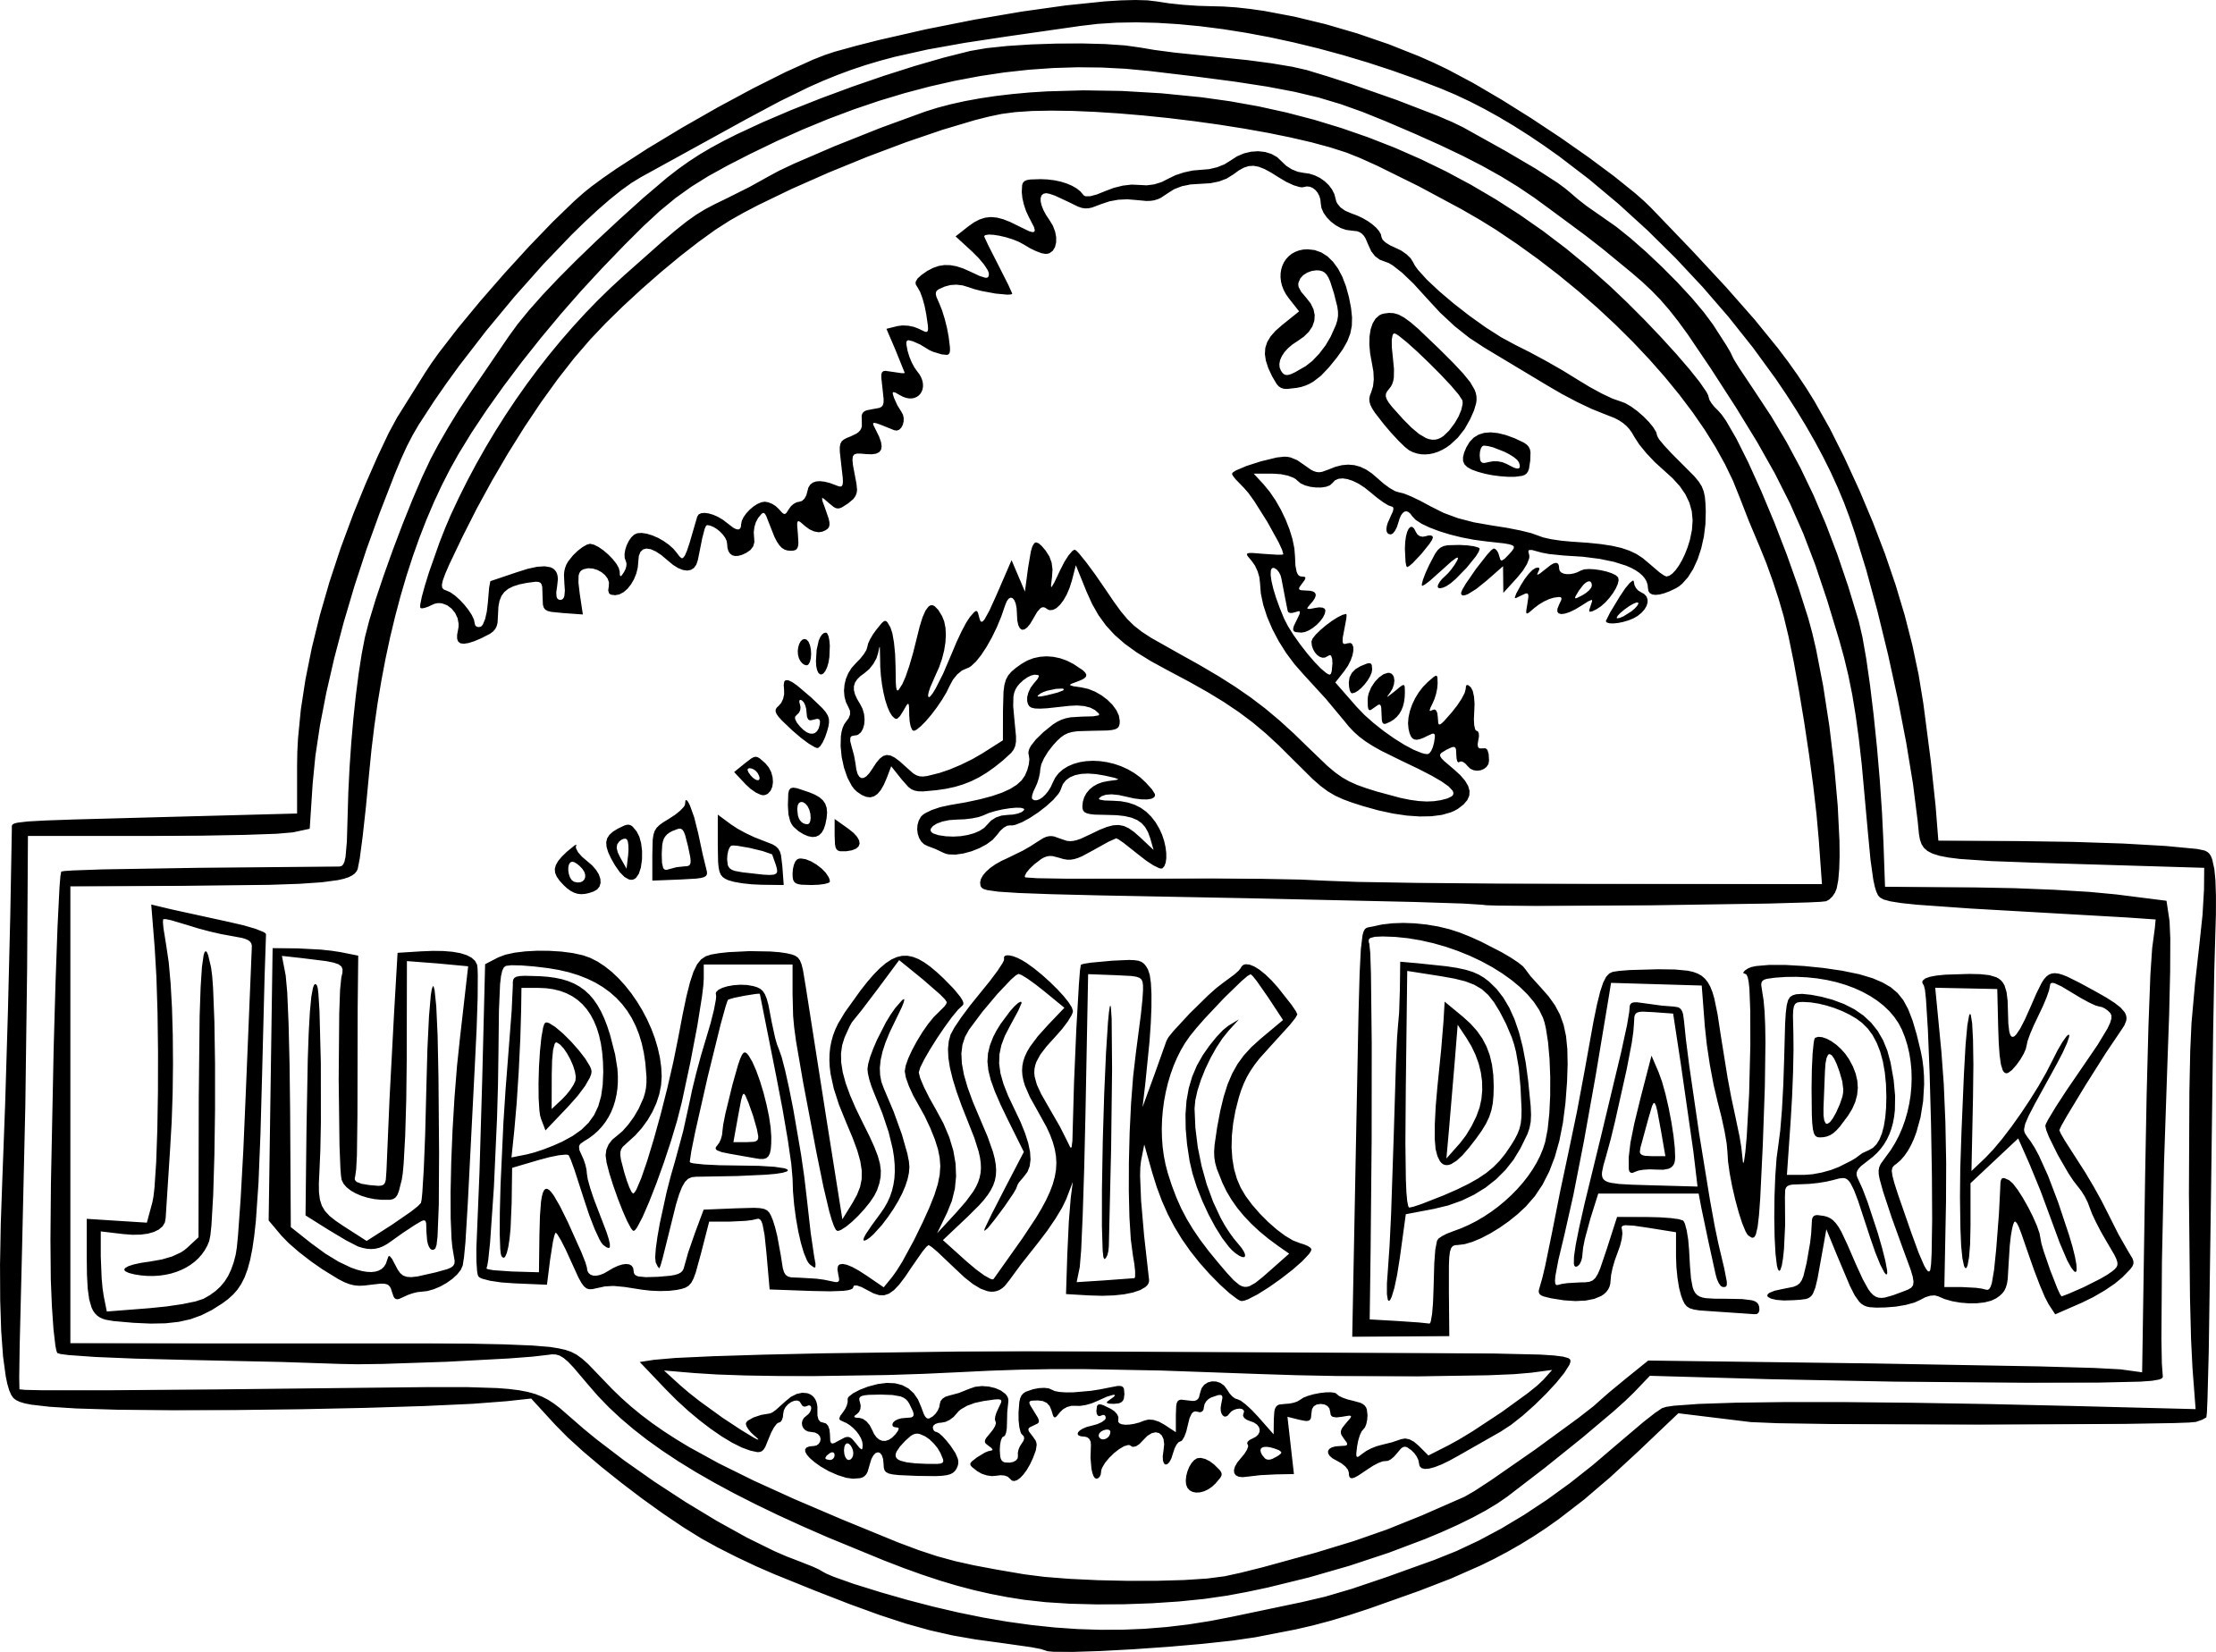 Jurassic World Coloring Pages to Print   Free Coloring Sheets